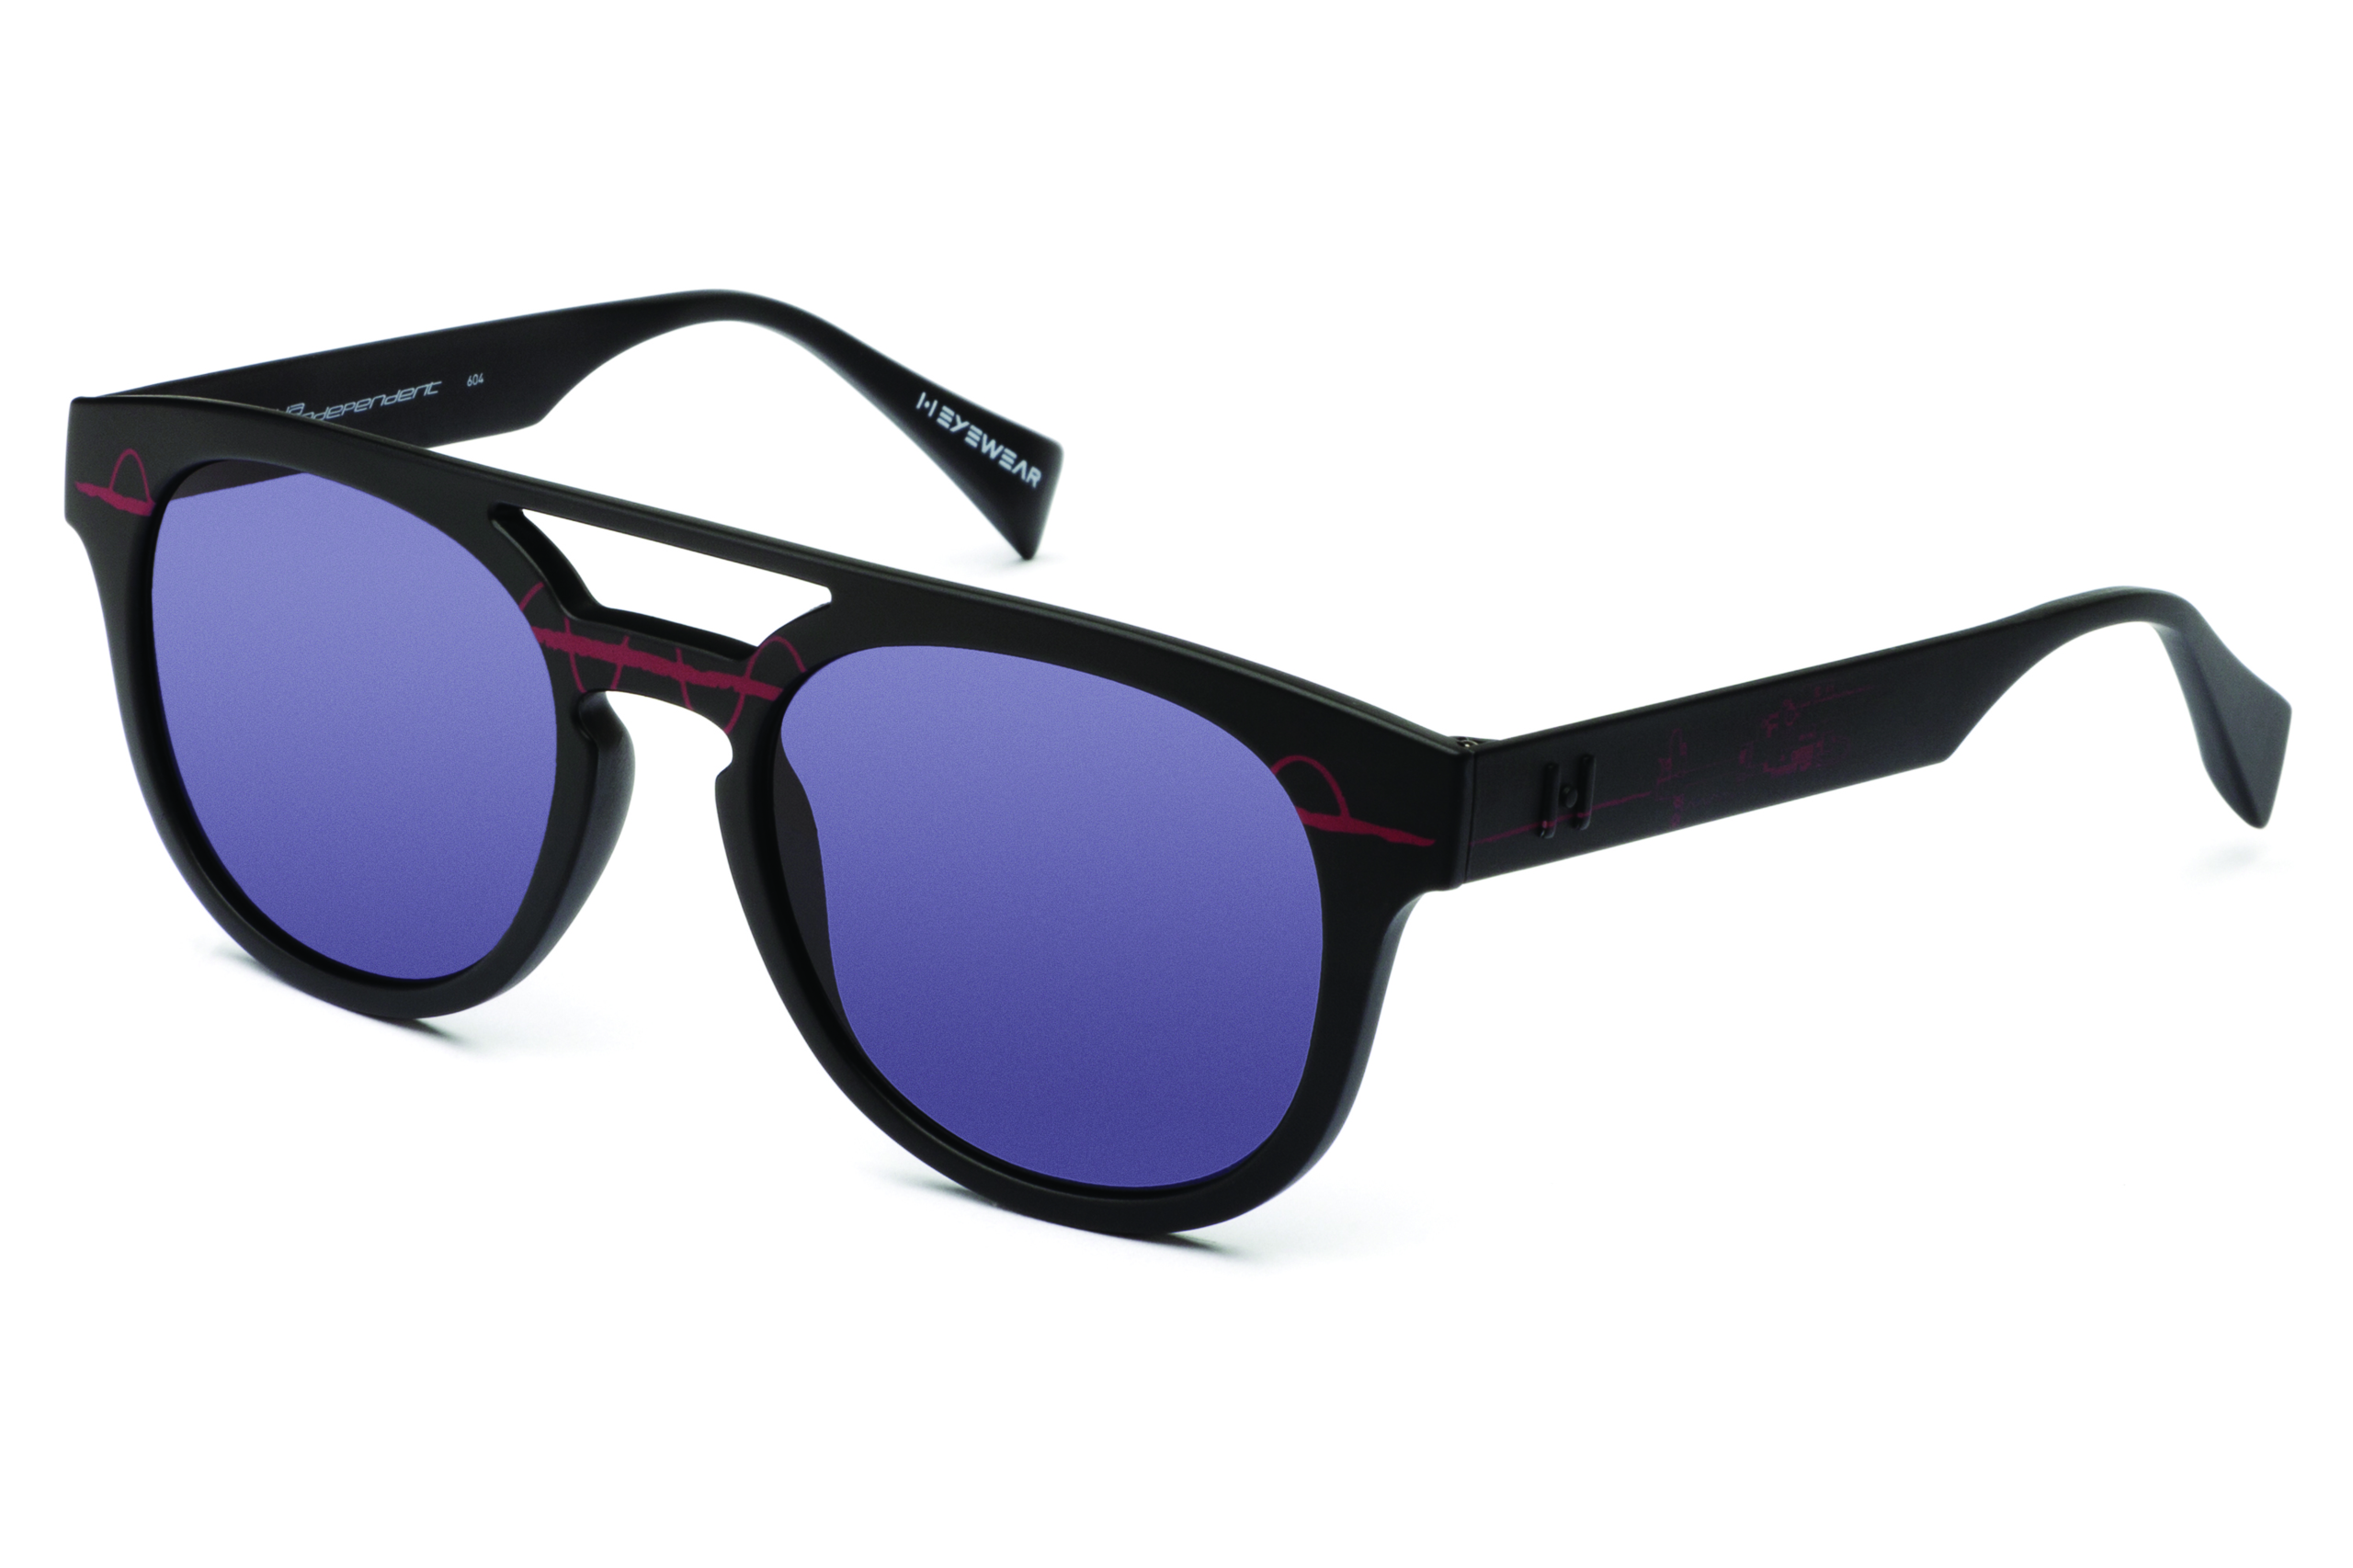 Foto de Italia Independent x Ghostbusters Eyewear Collection (19/20)